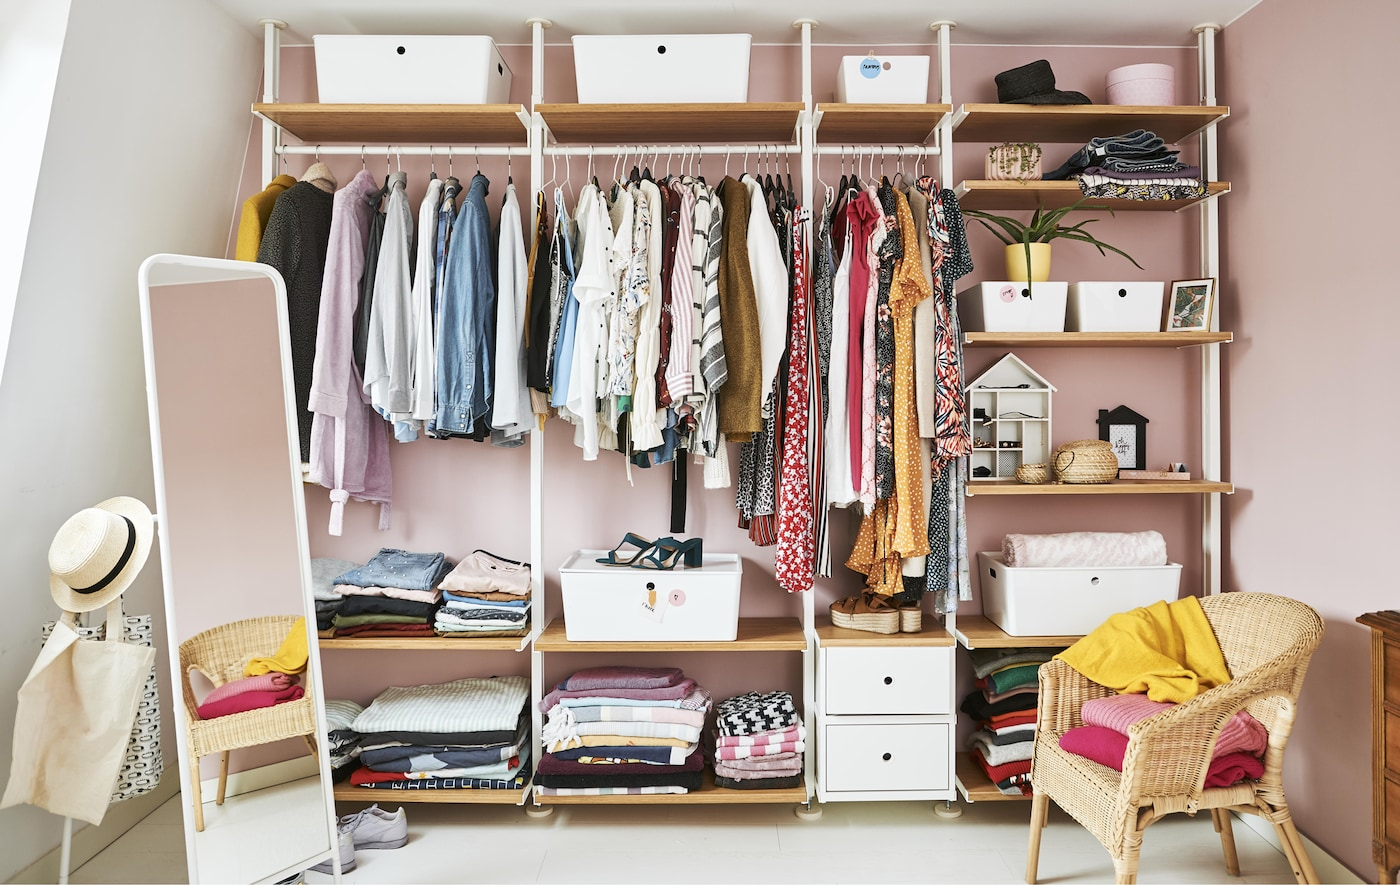 Design an open wardrobe to perfectly fit your needs - IKEA